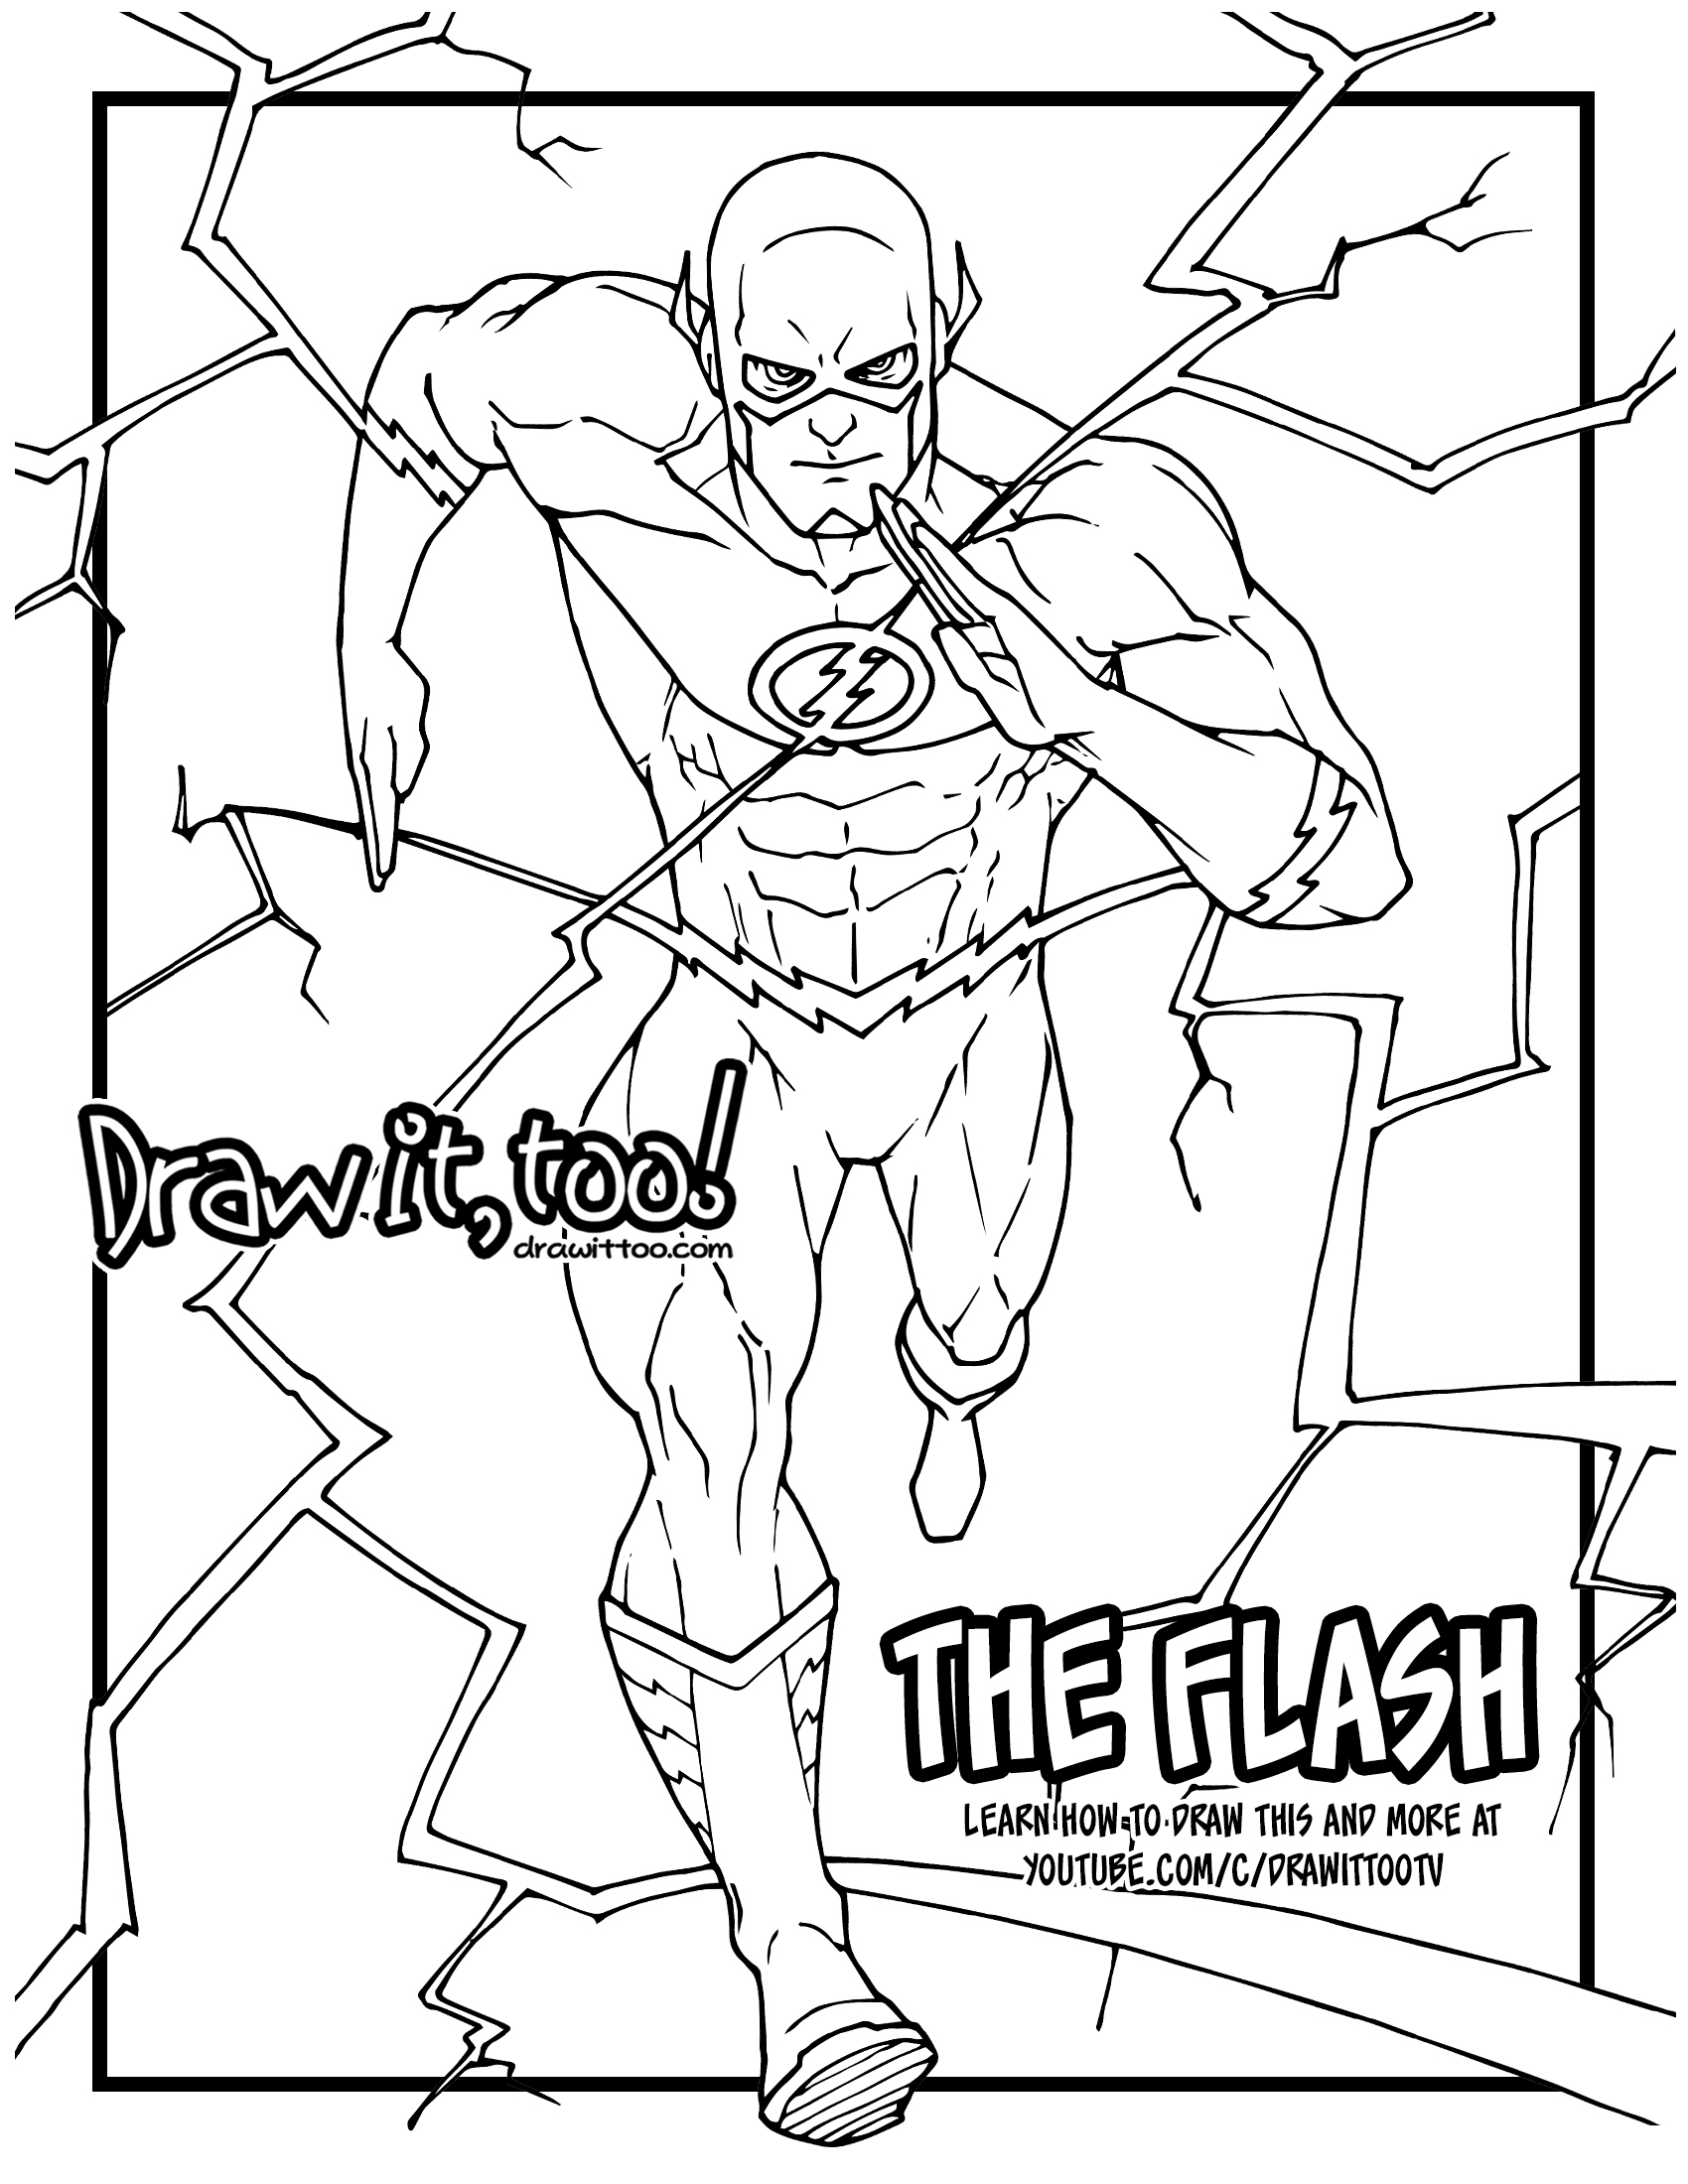 how to draw the flash comic version drawing tutorial draw it too - Green Arrow Coloring Pages